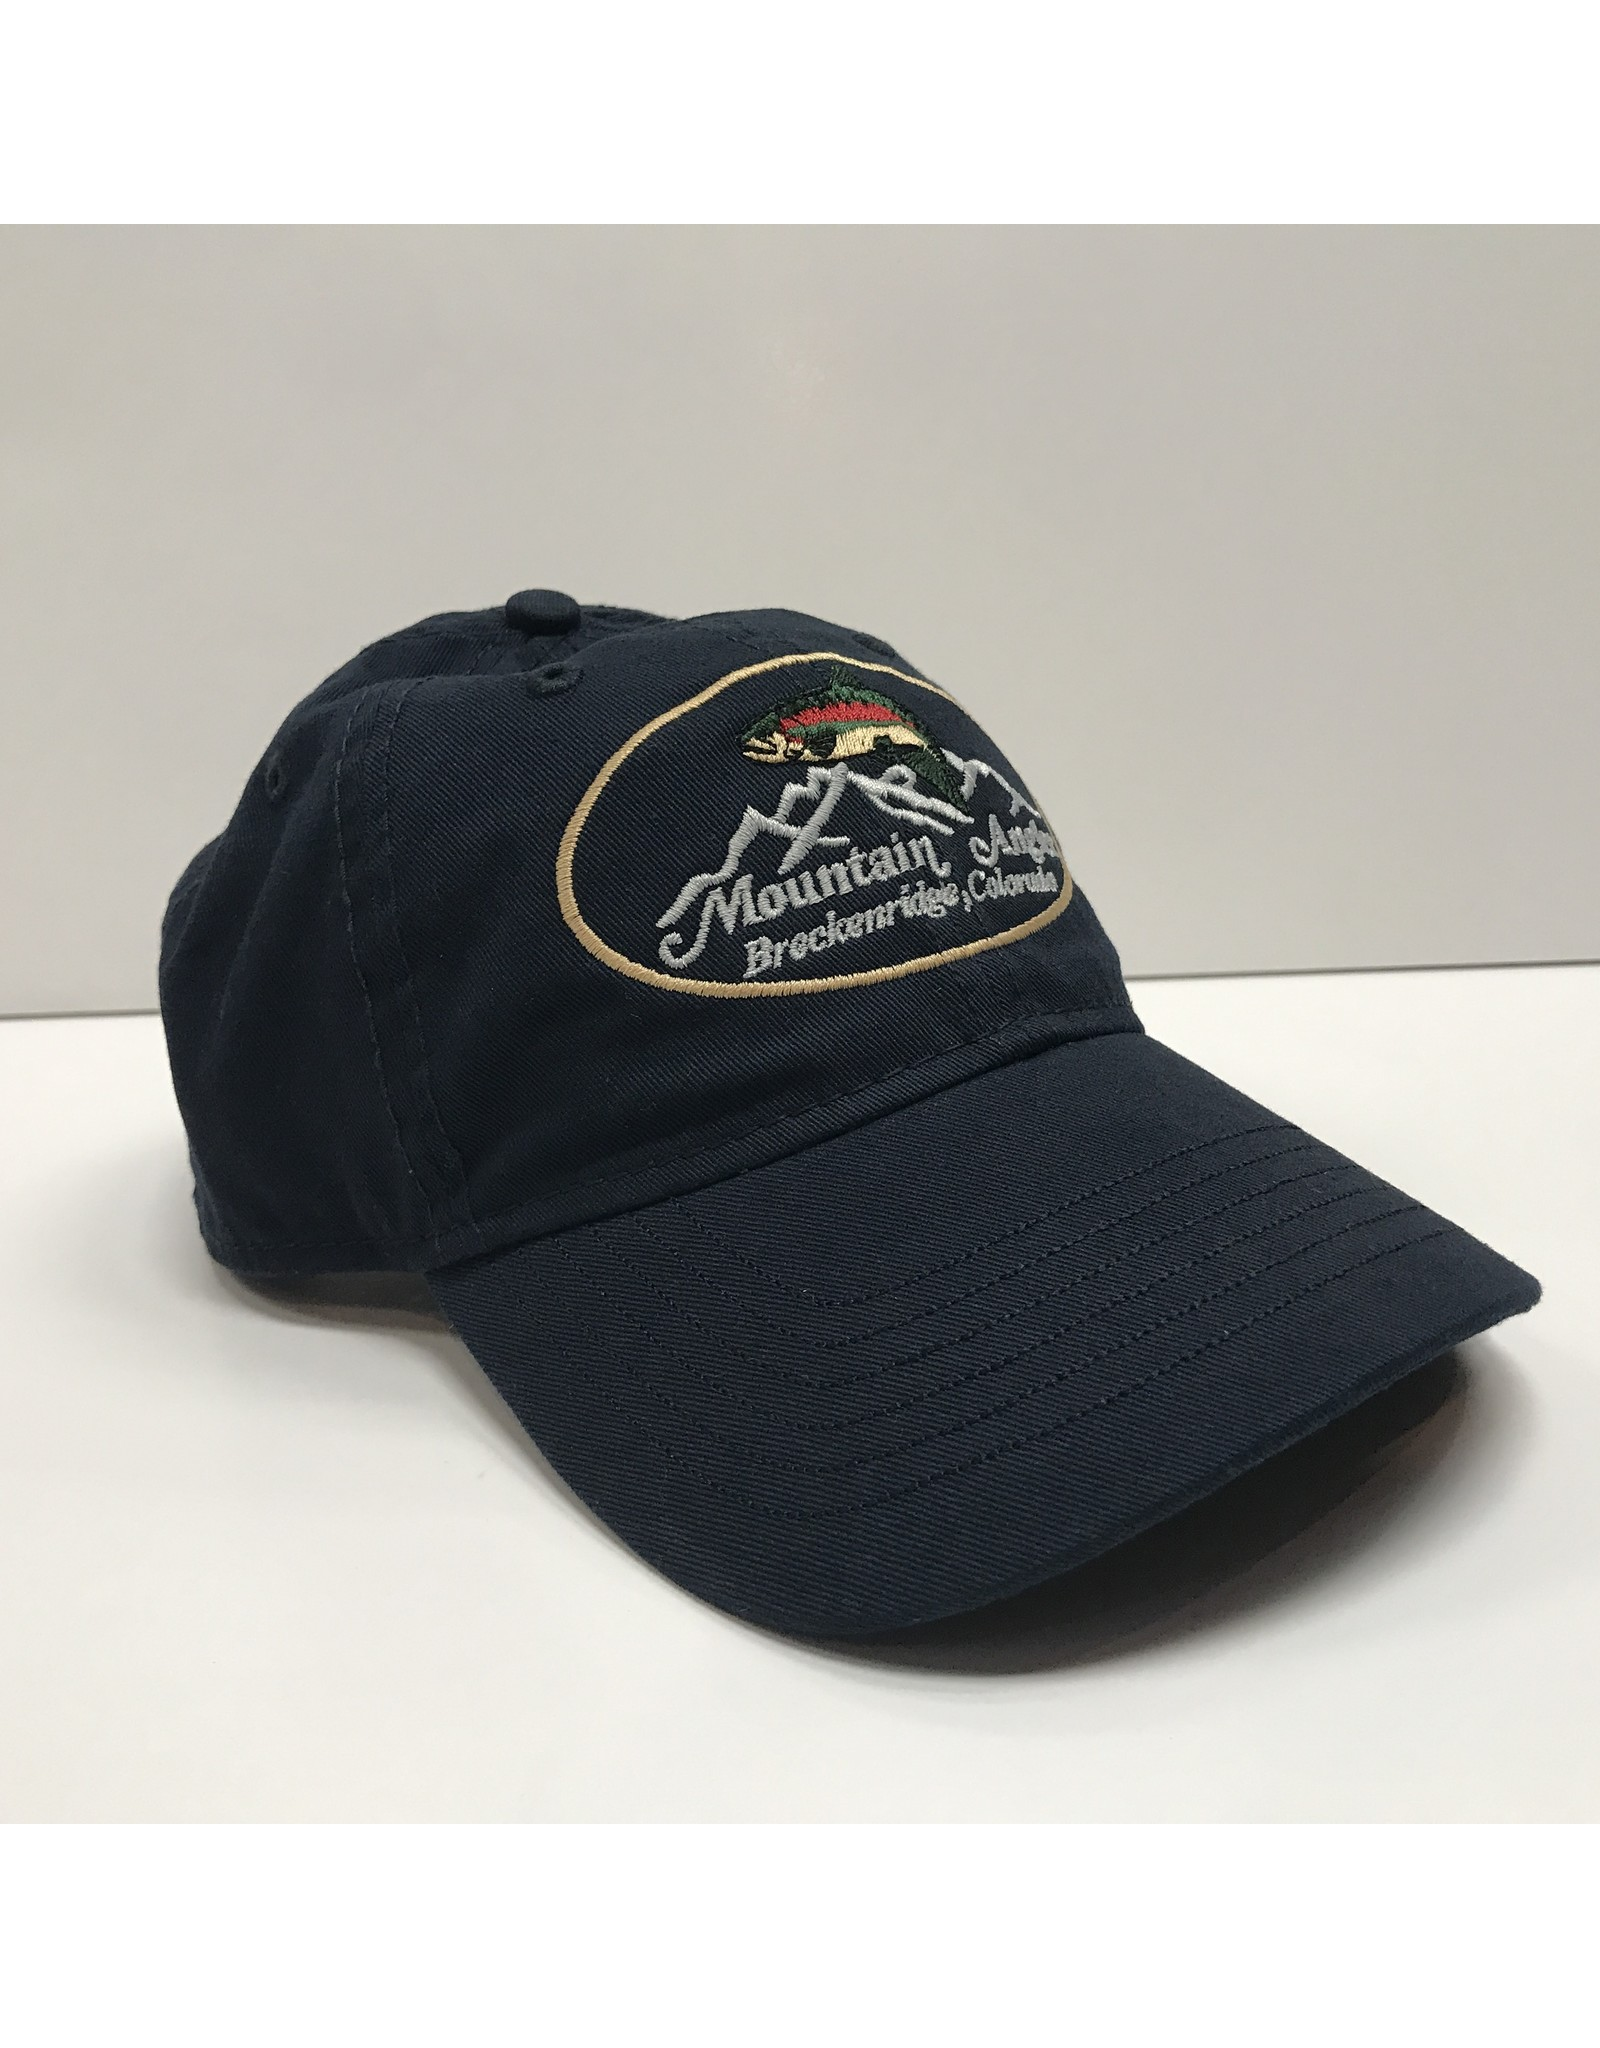 Ouray Mountain Angler - Hat / T-Shirt Combo